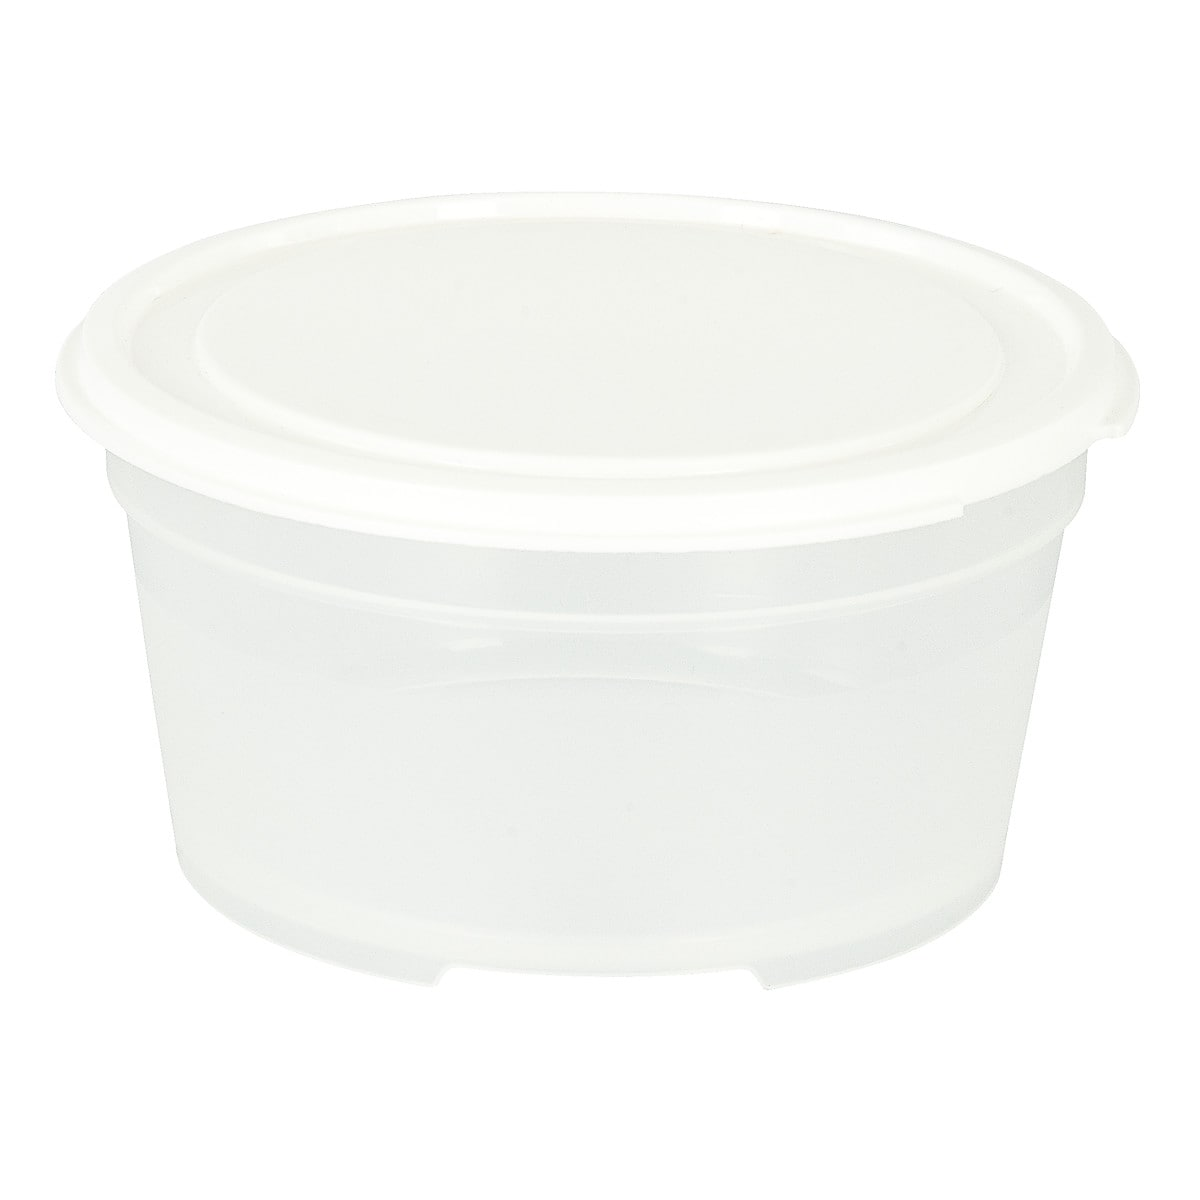 Set of 3 Coline Round Food Containers